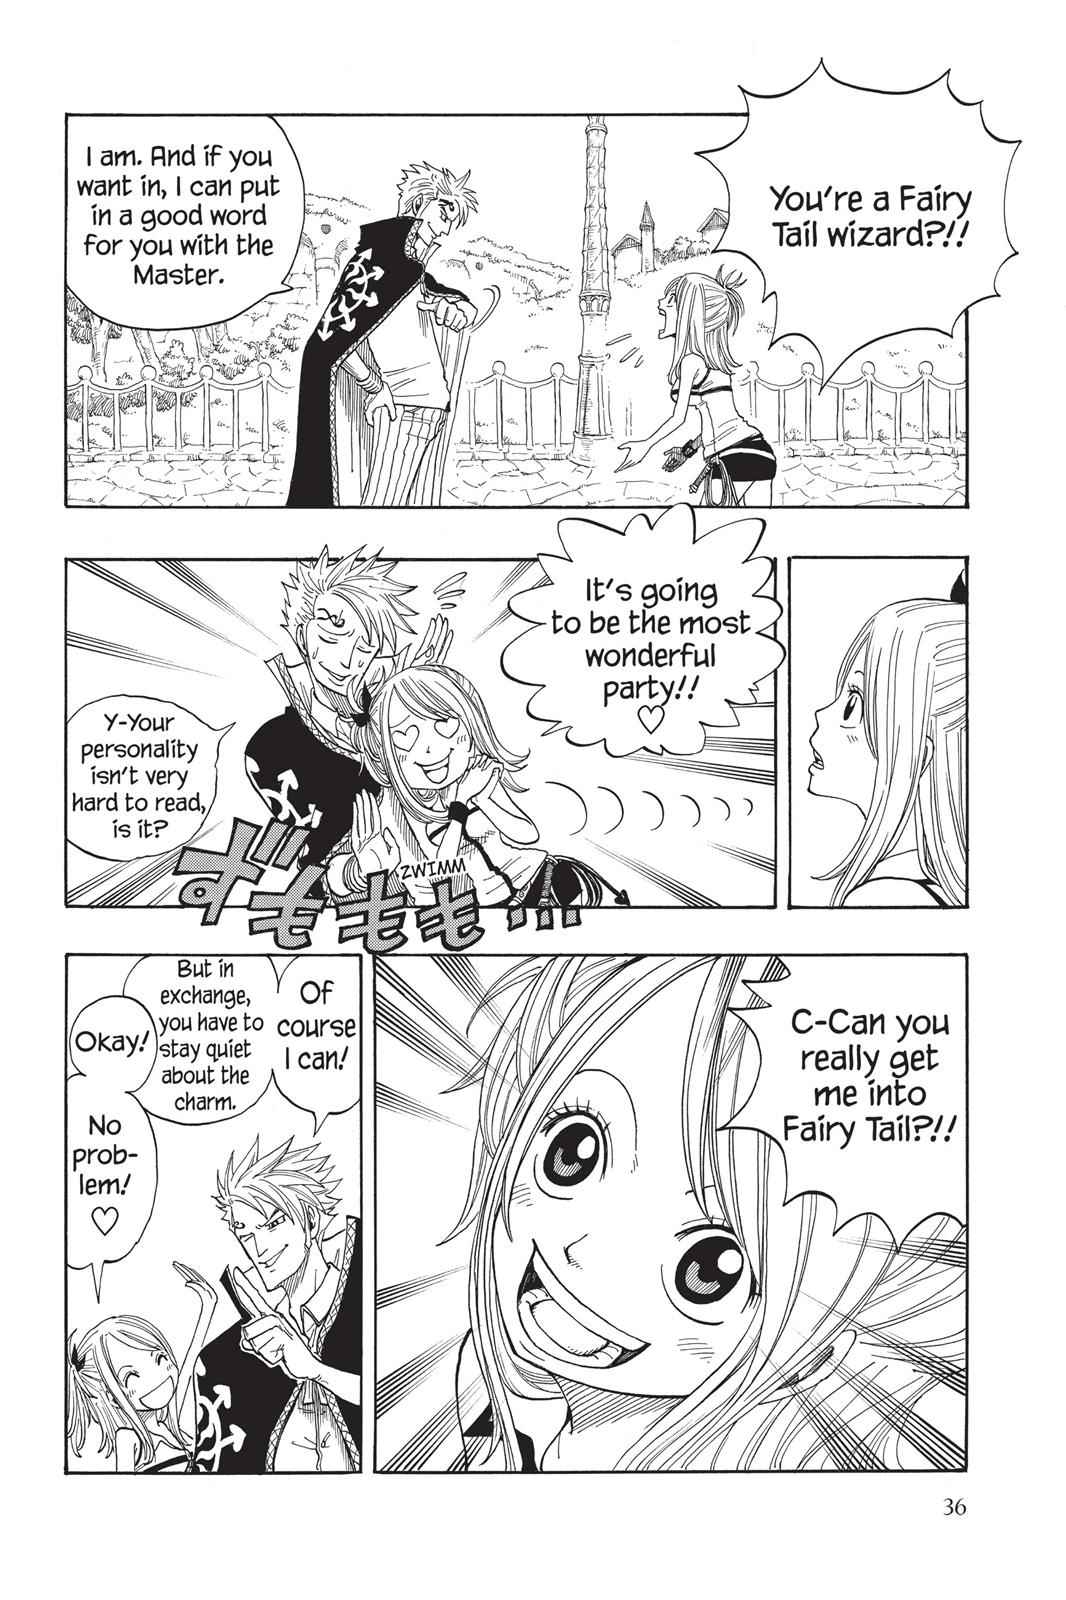 Fairy Tail Chapter 1 Page 36